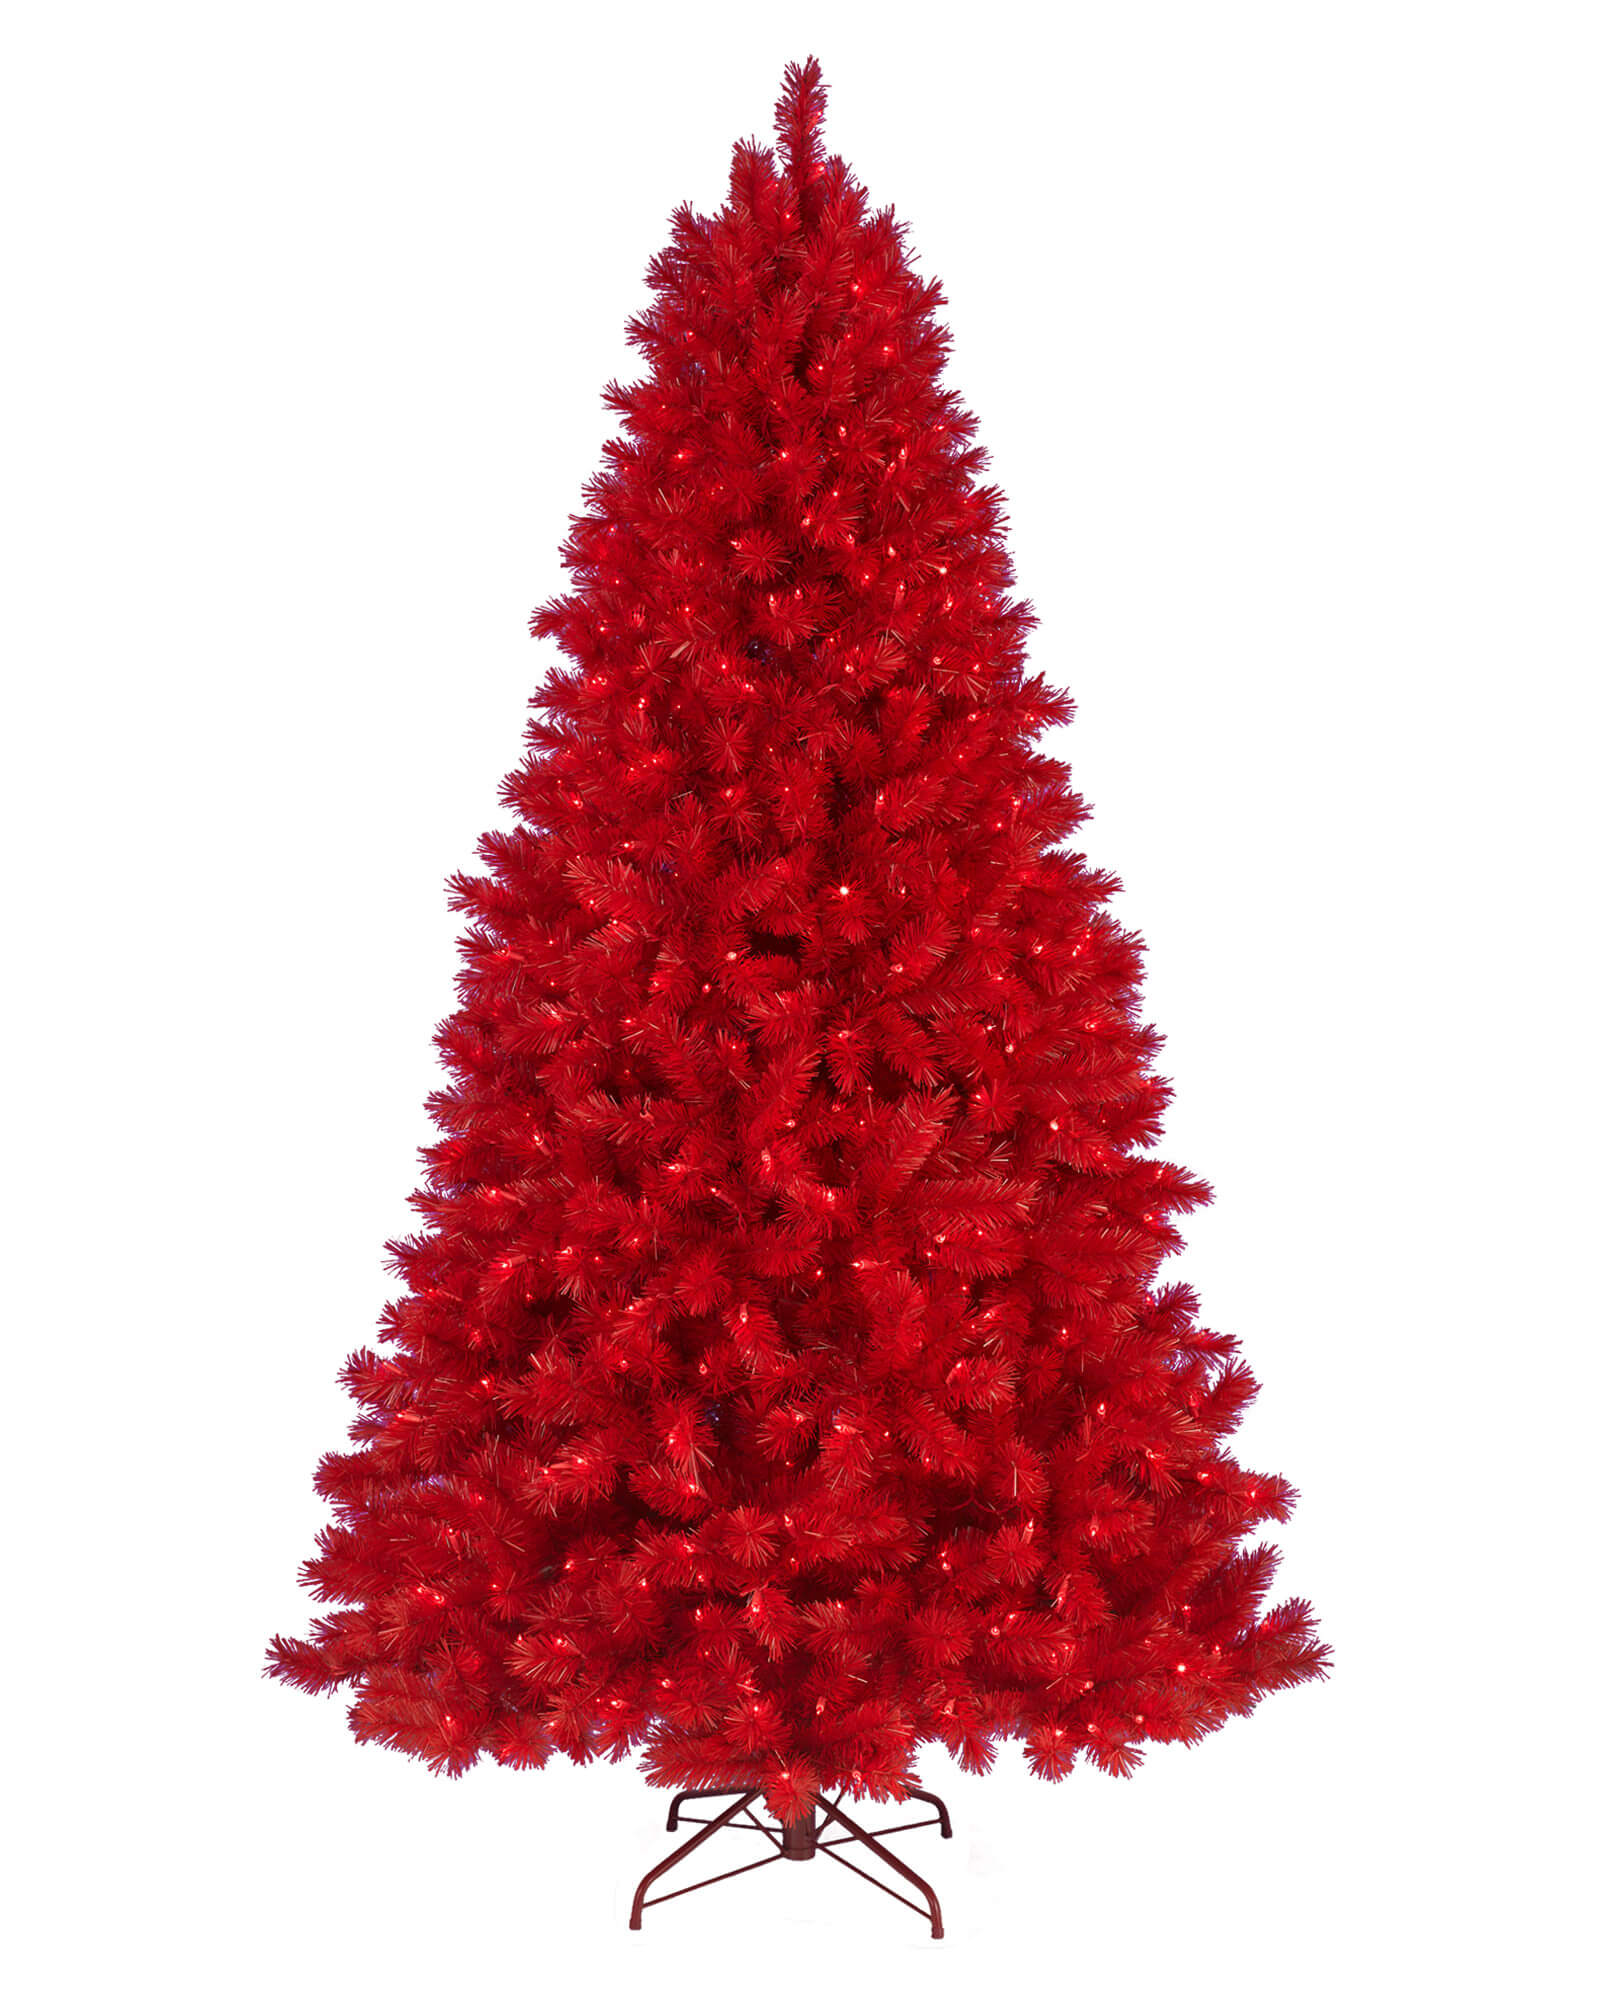 Pine Christmas Tree Red 6ft Online Only India S Premium Party Store Wanna Party